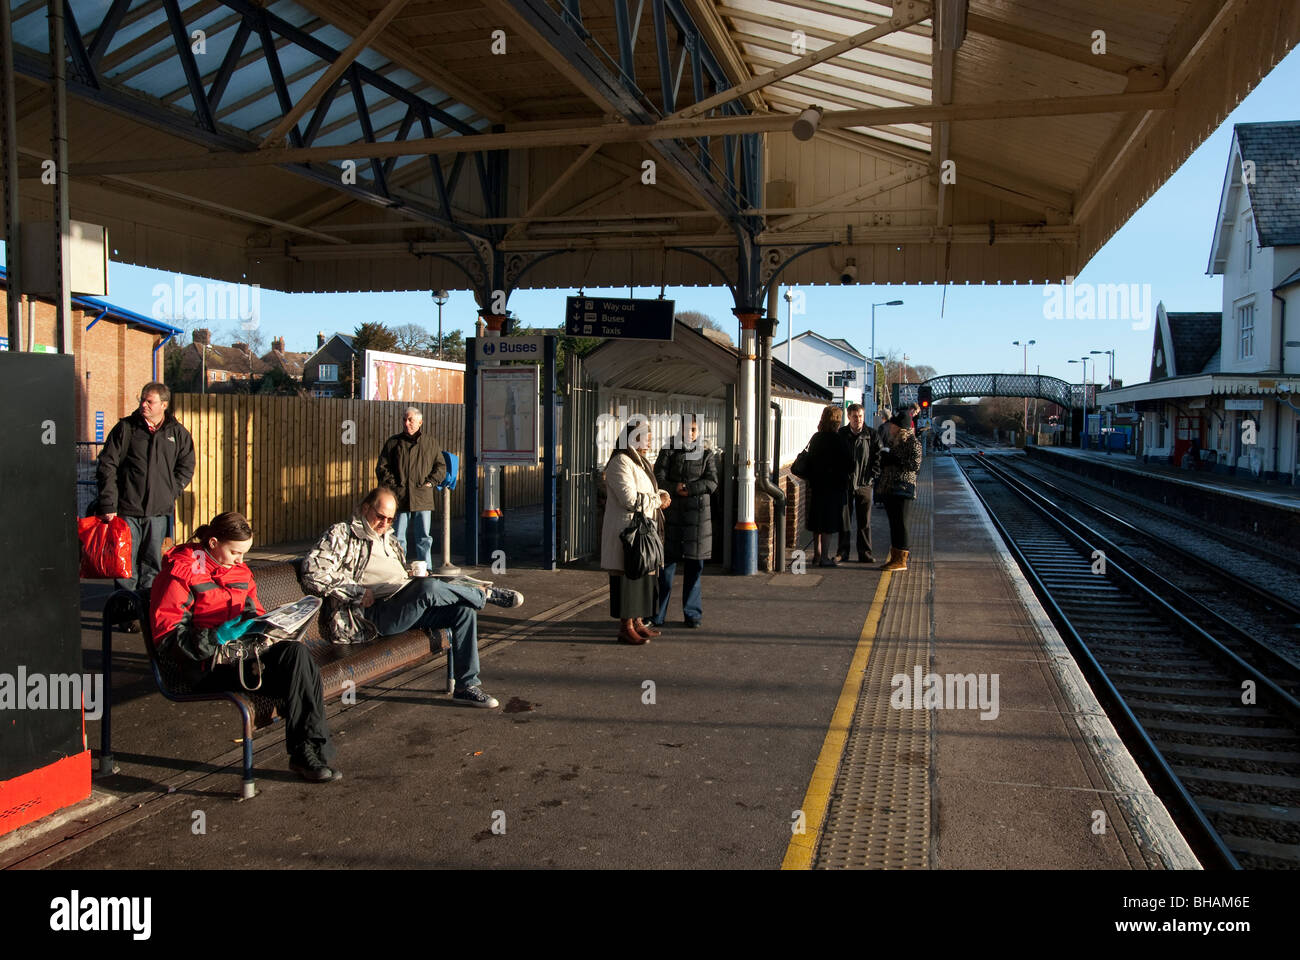 Passengers waiting for train on Petersfield railway station platform - Stock Image